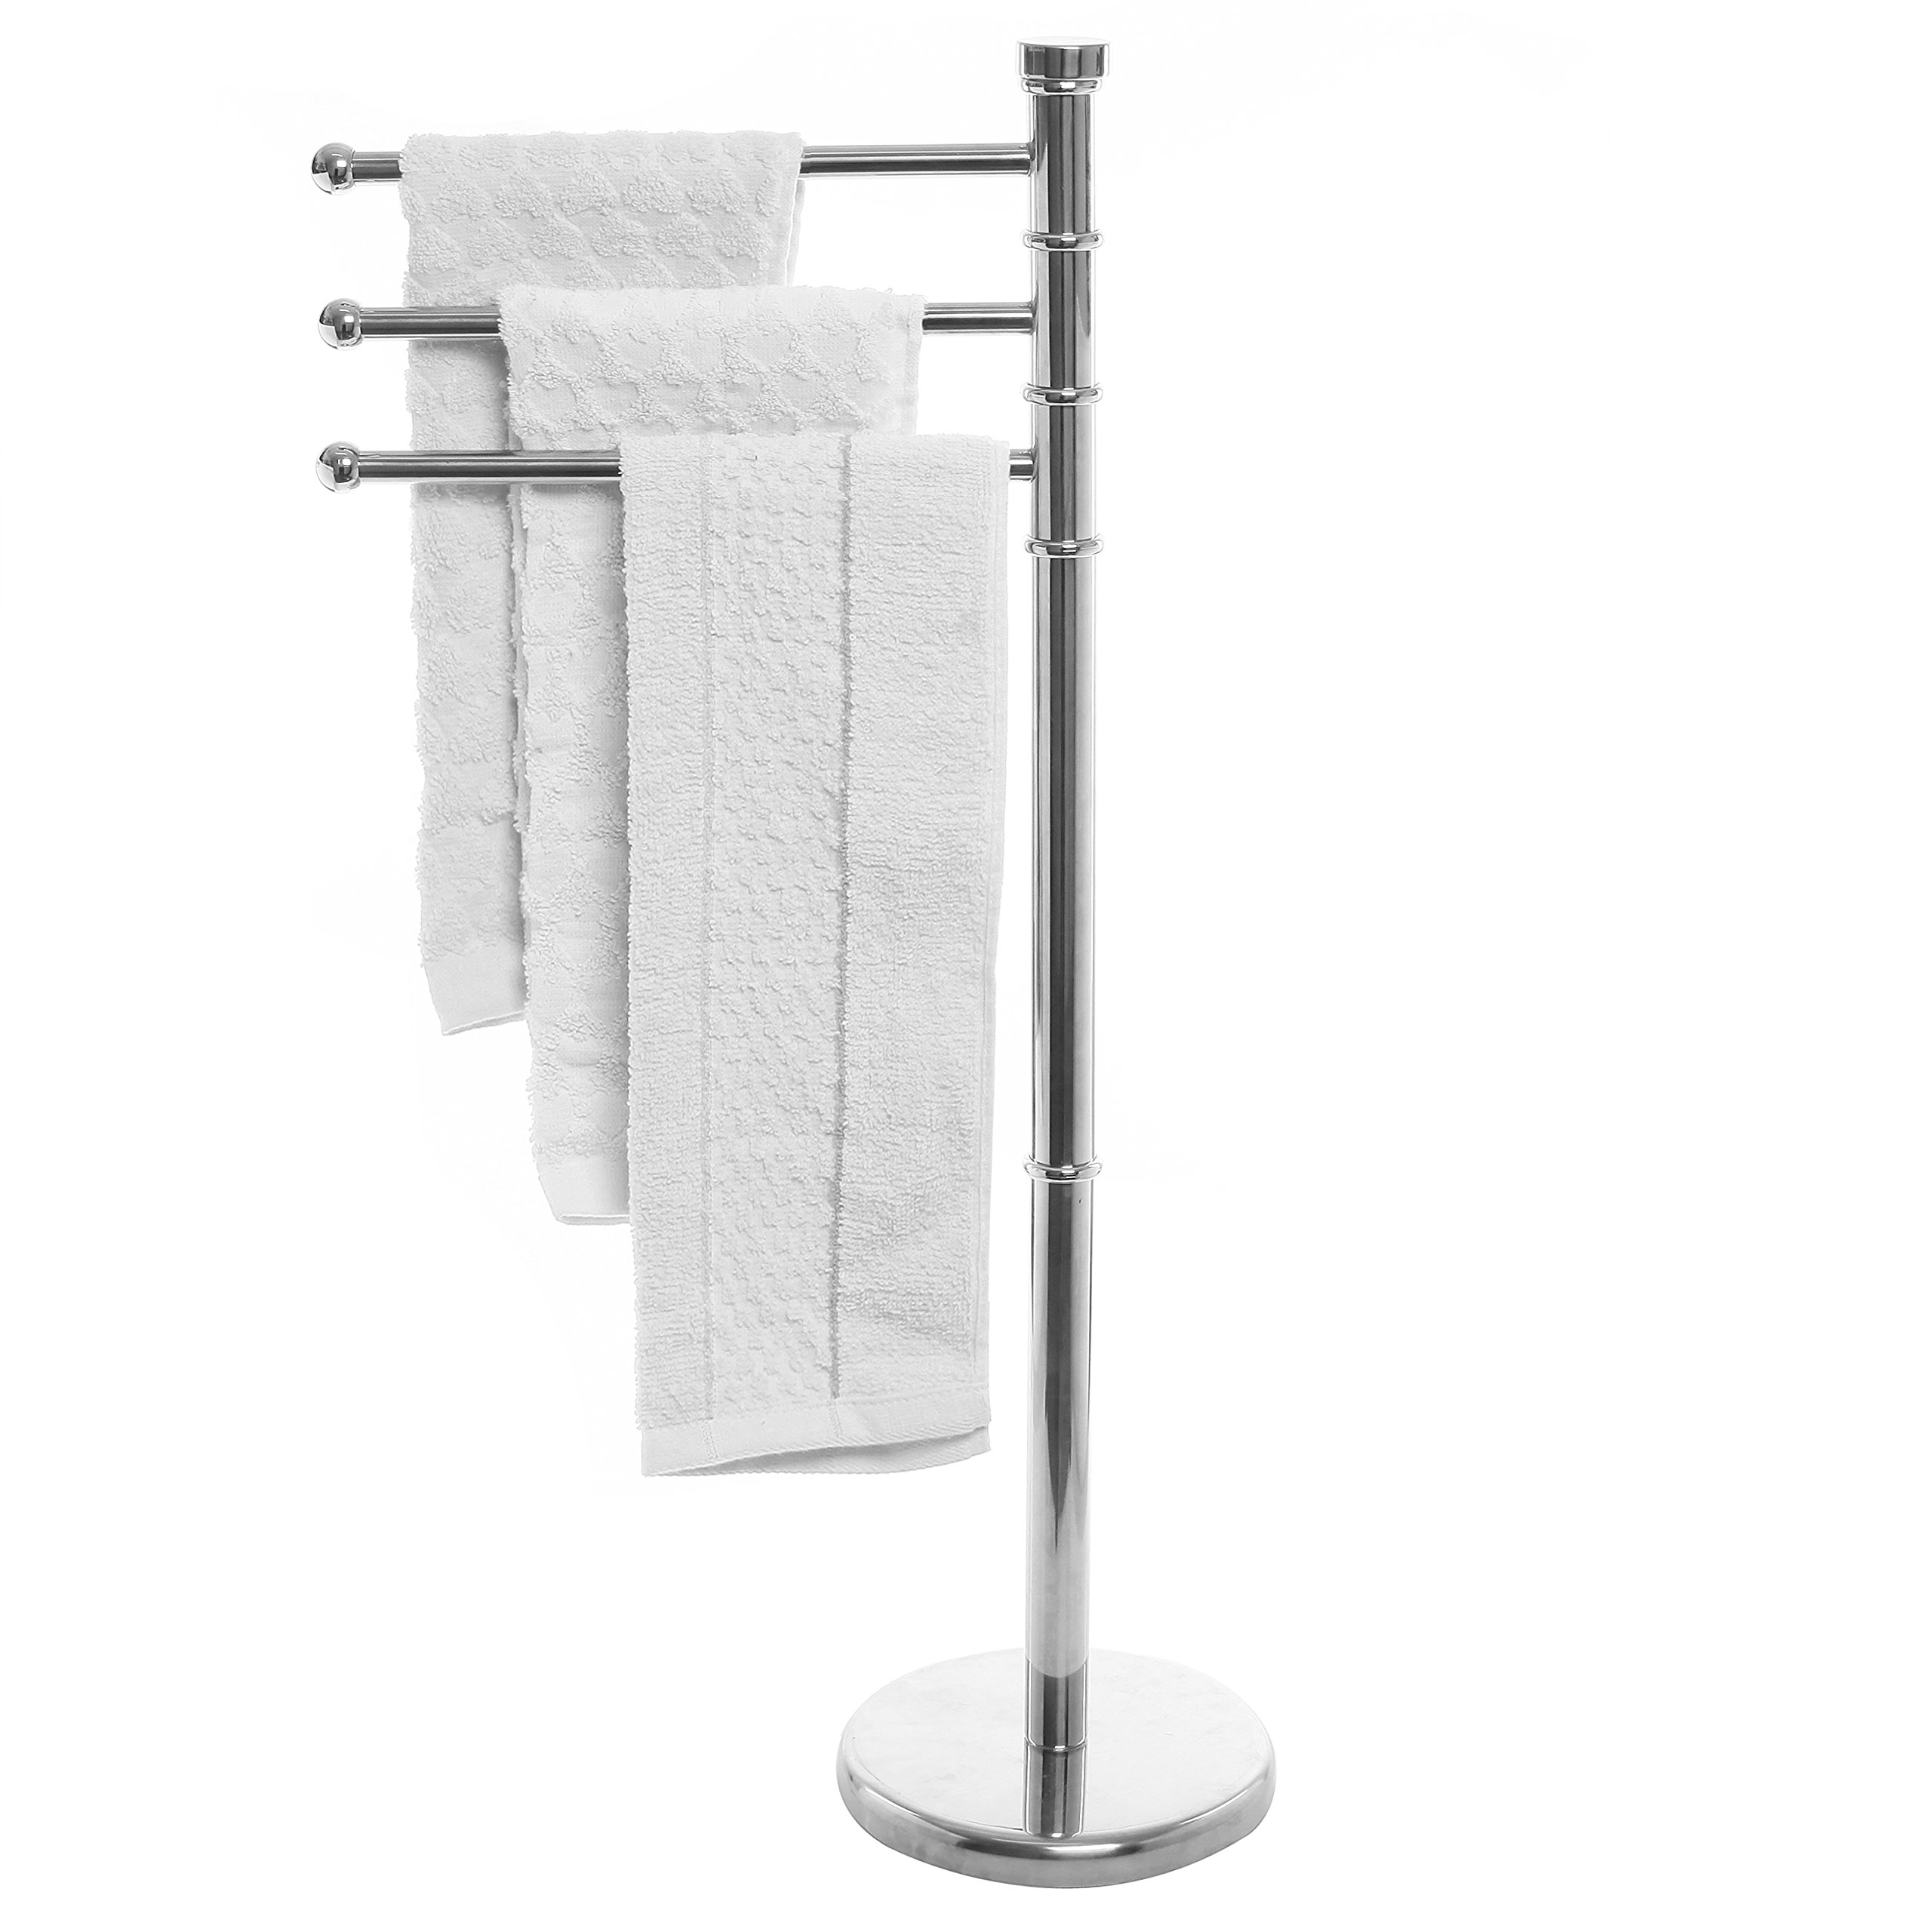 MyGift Modern Stainless Steel 3 Swivel Arm Towel Holder Rack with Round Base, Freestanding Hand Towel Bar Stand by MyGift